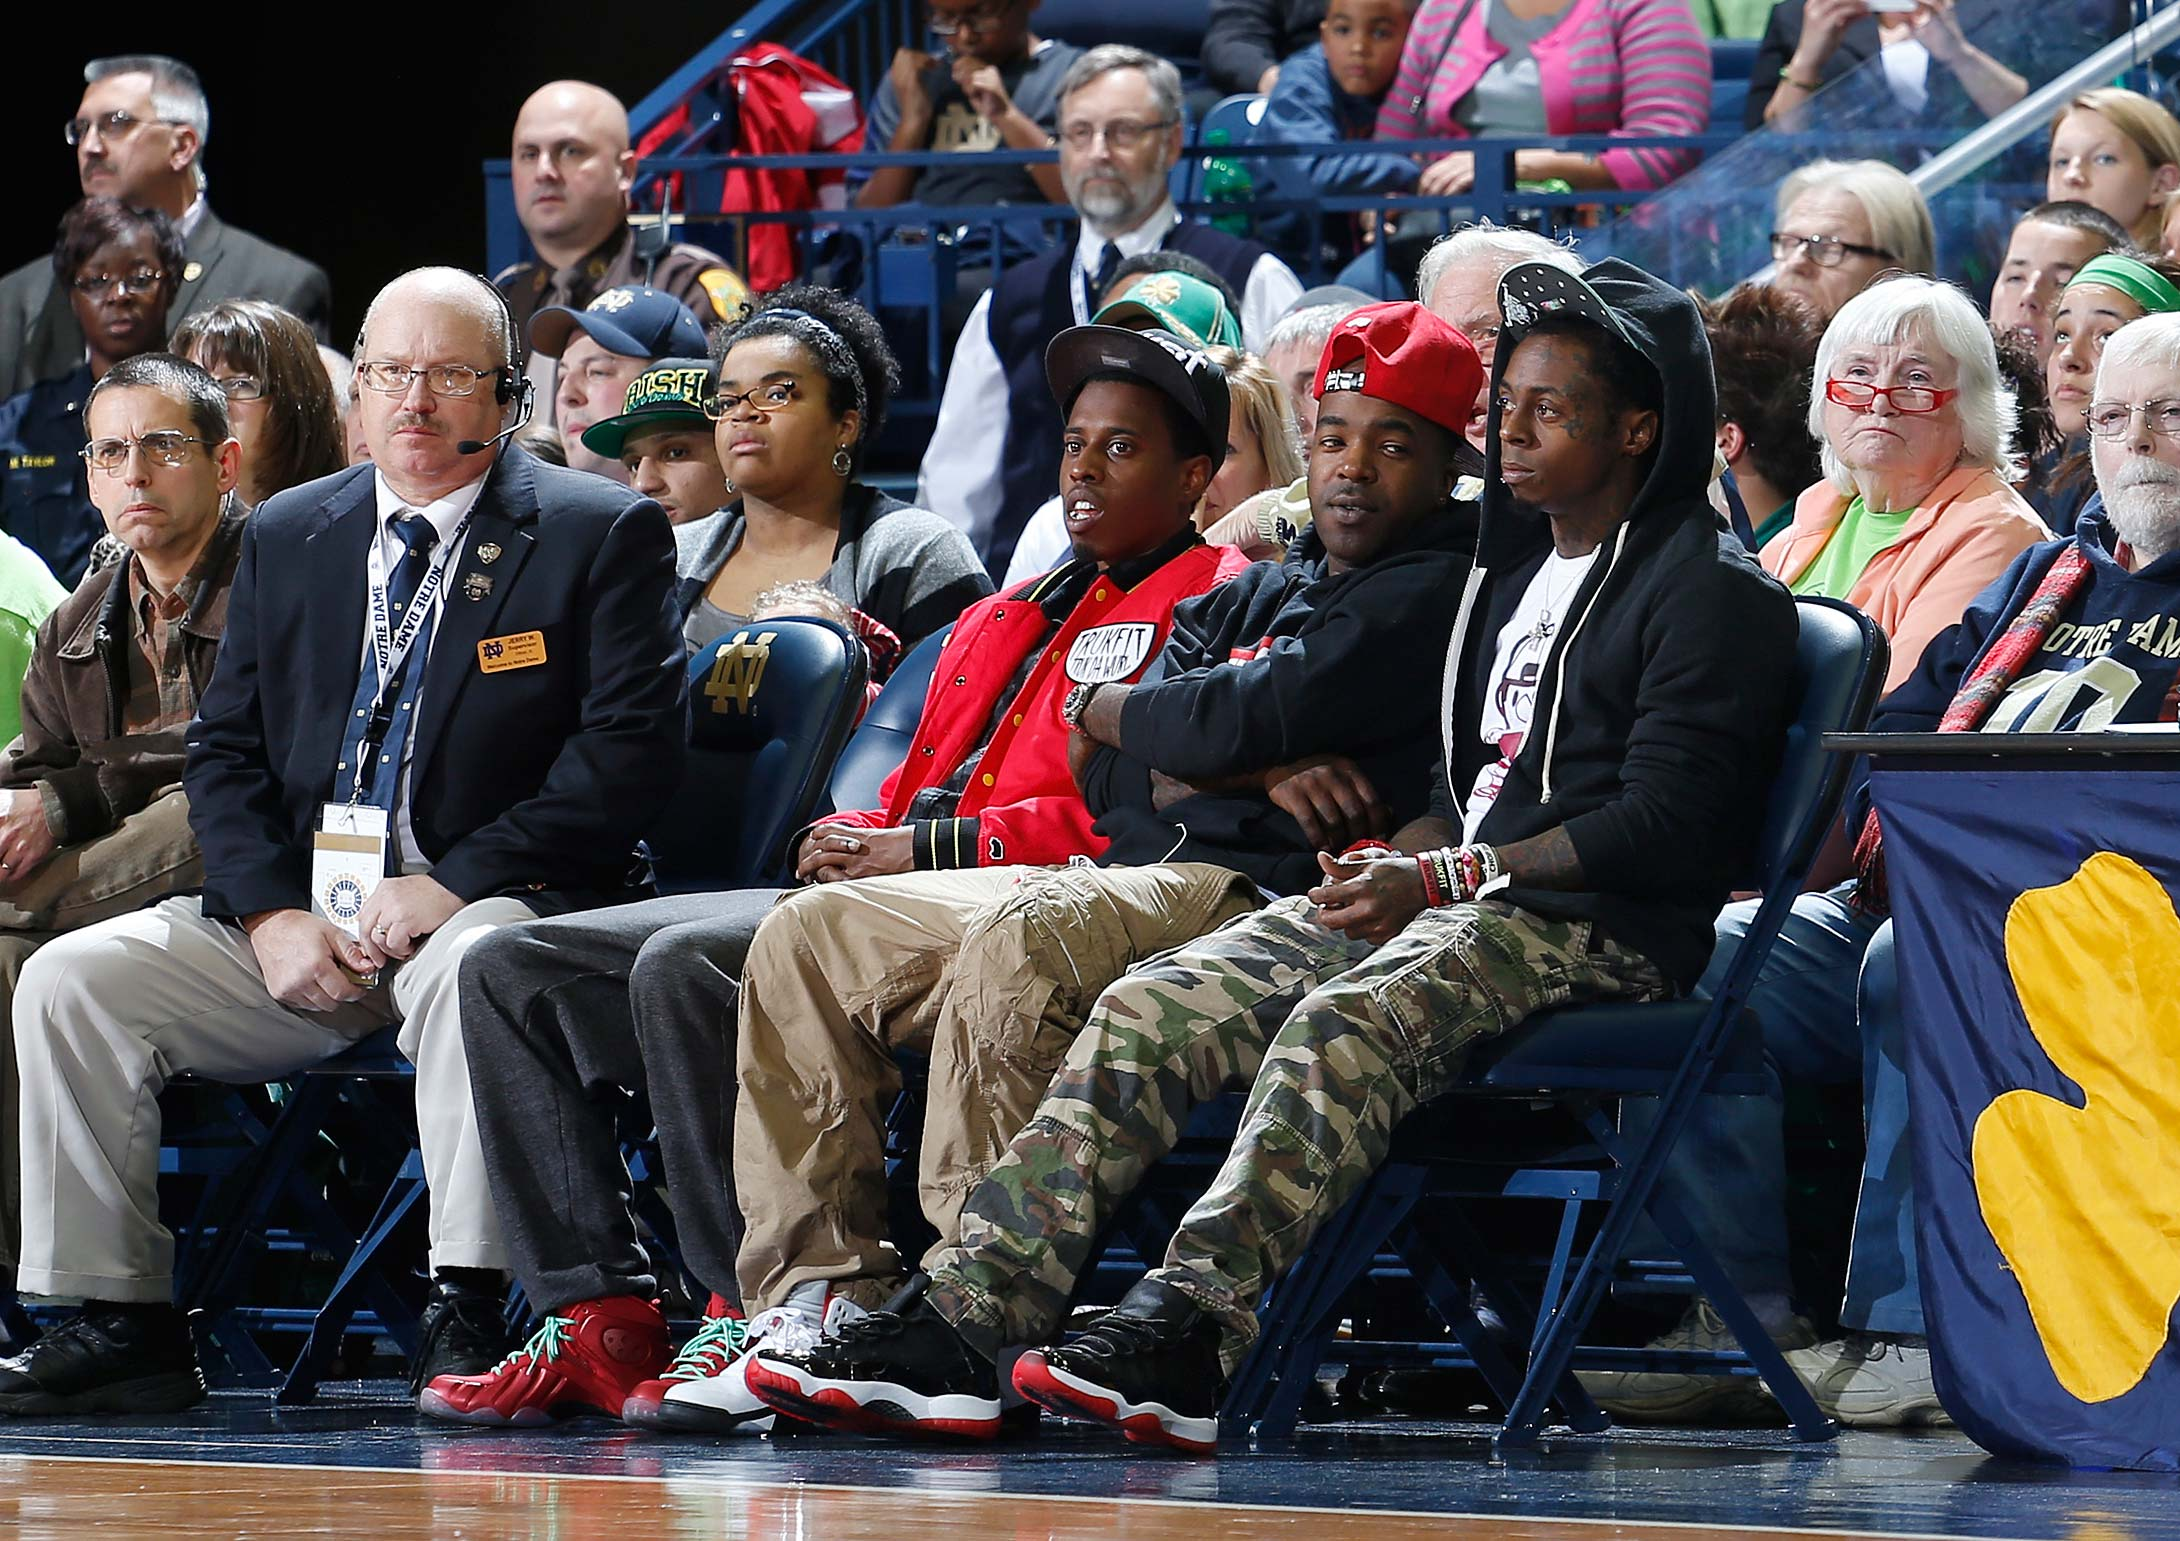 Rapper Lil Wayne watches the 2012 game between Notre Dame and Baylor in South Bend, Ind.